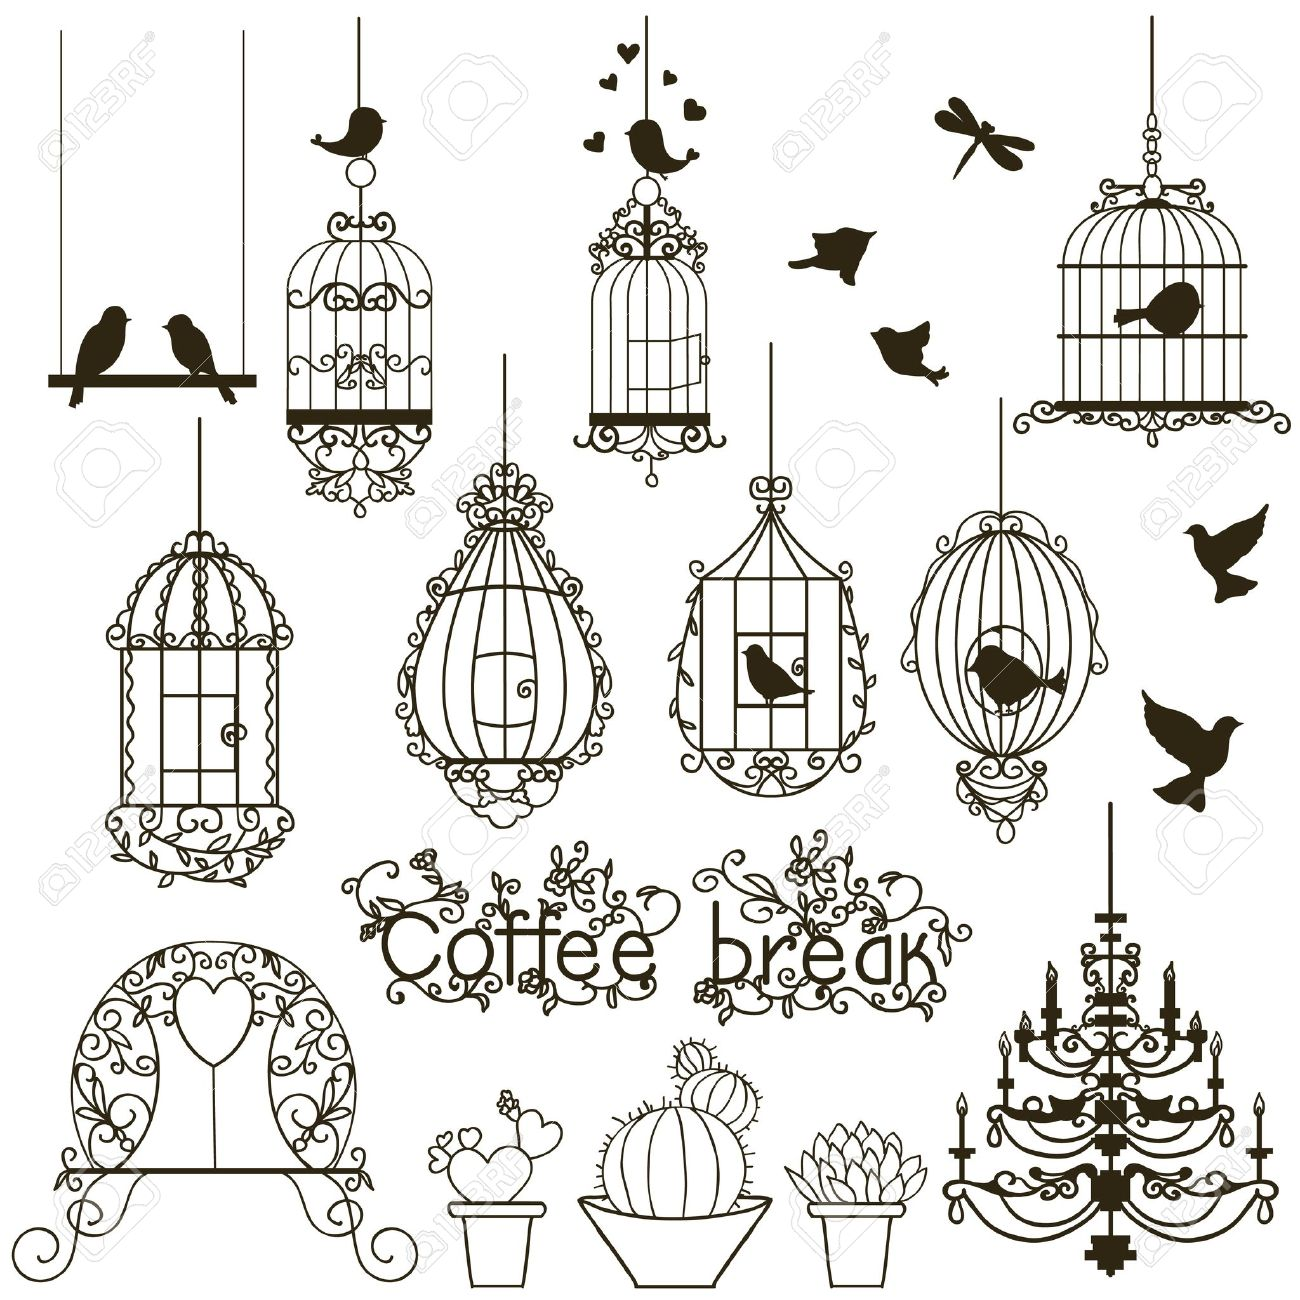 Birdcage clipart #20, Download drawings